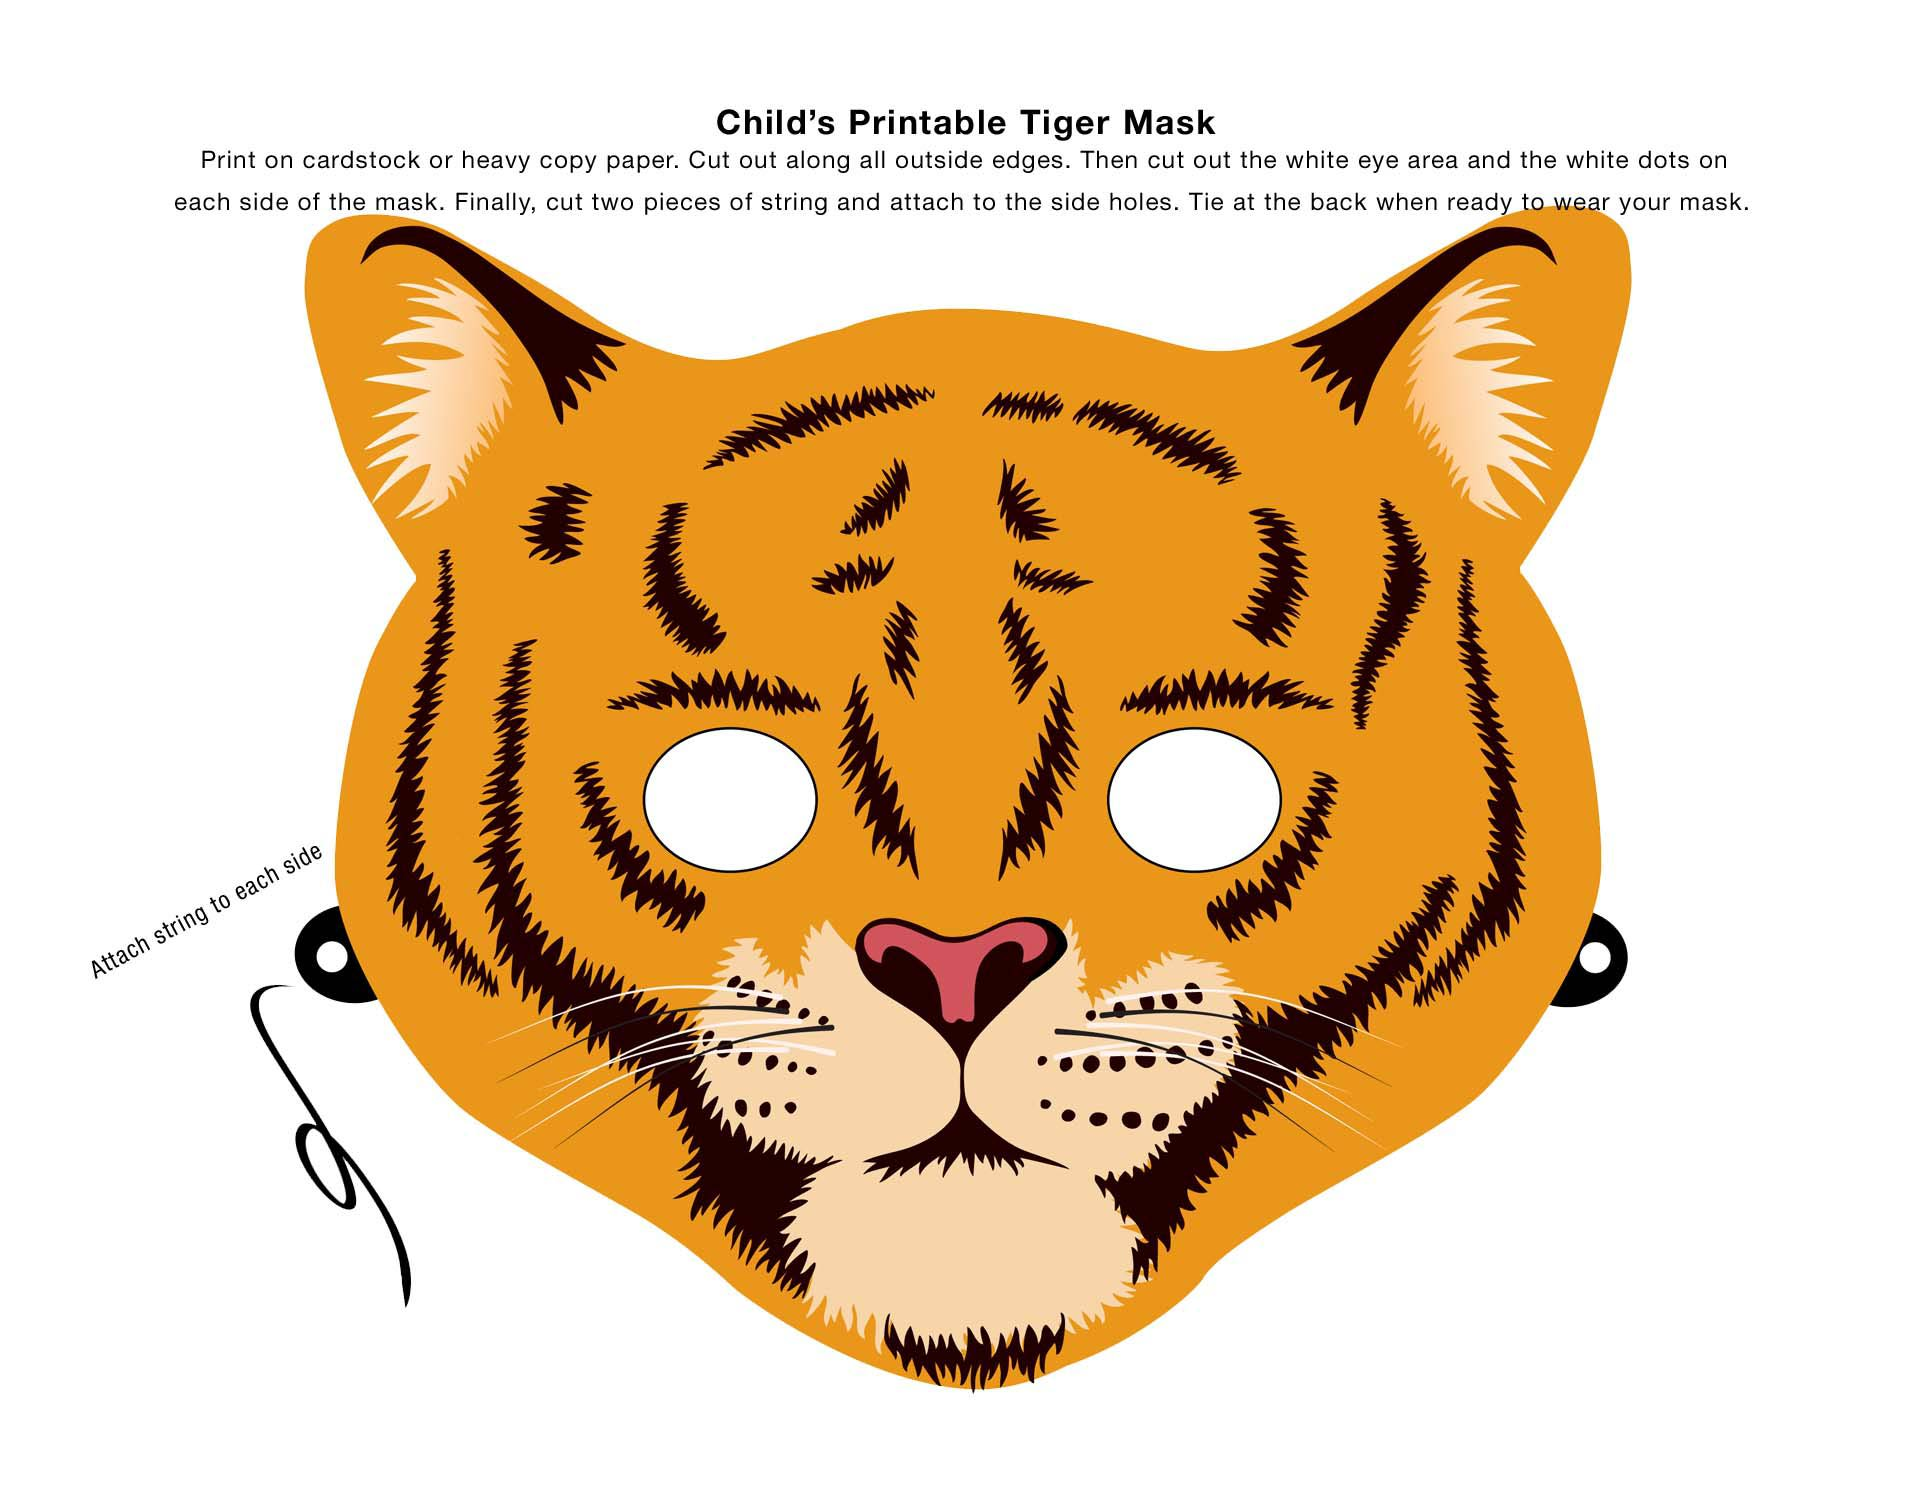 image regarding Lion Mask Printable named Lion Mask Clipart Totally free obtain perfect Lion Mask Clipart upon